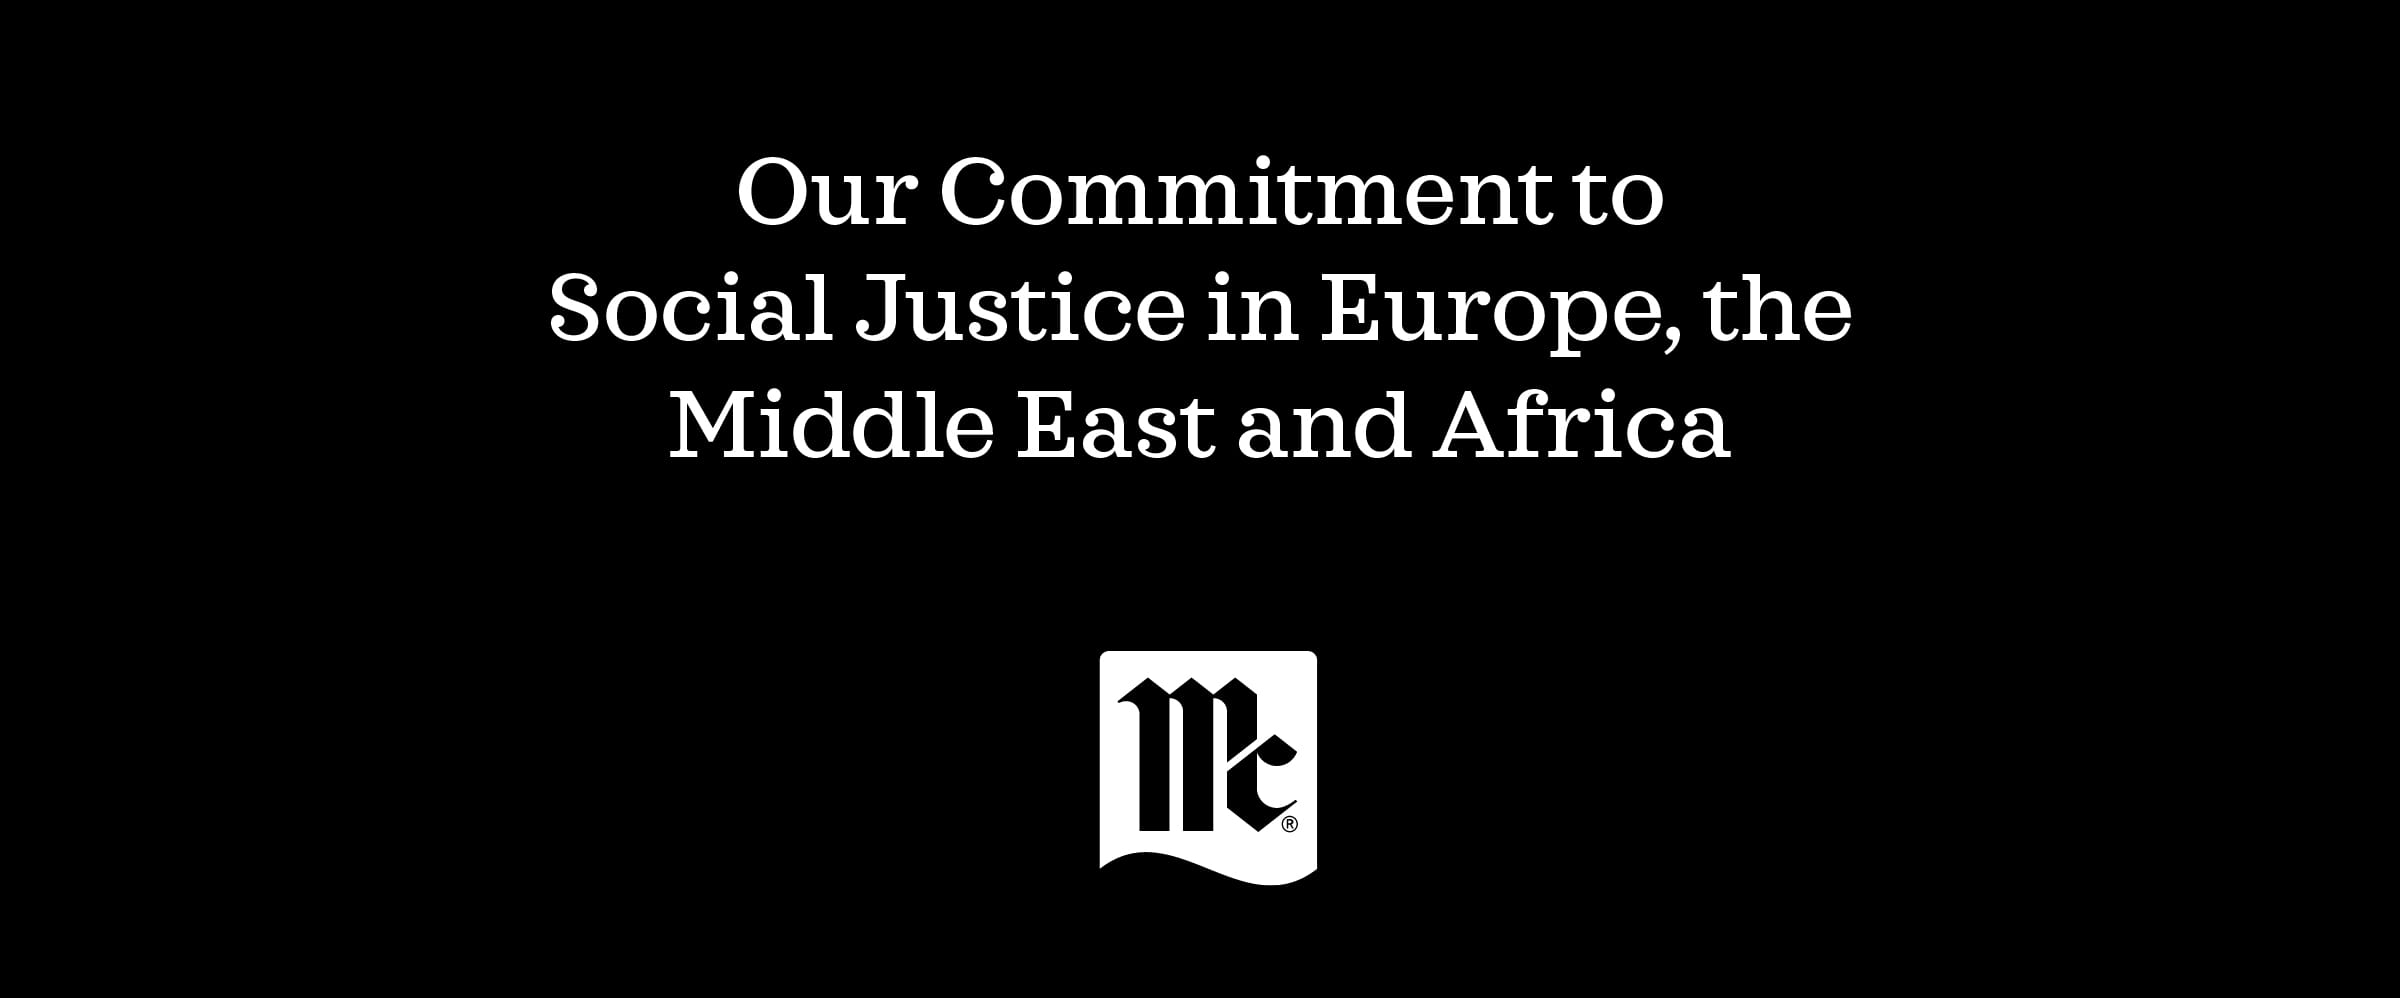 Diversity and Inclusion in Europe, Middle East, Africa, Racial Equality; McCormick & Company